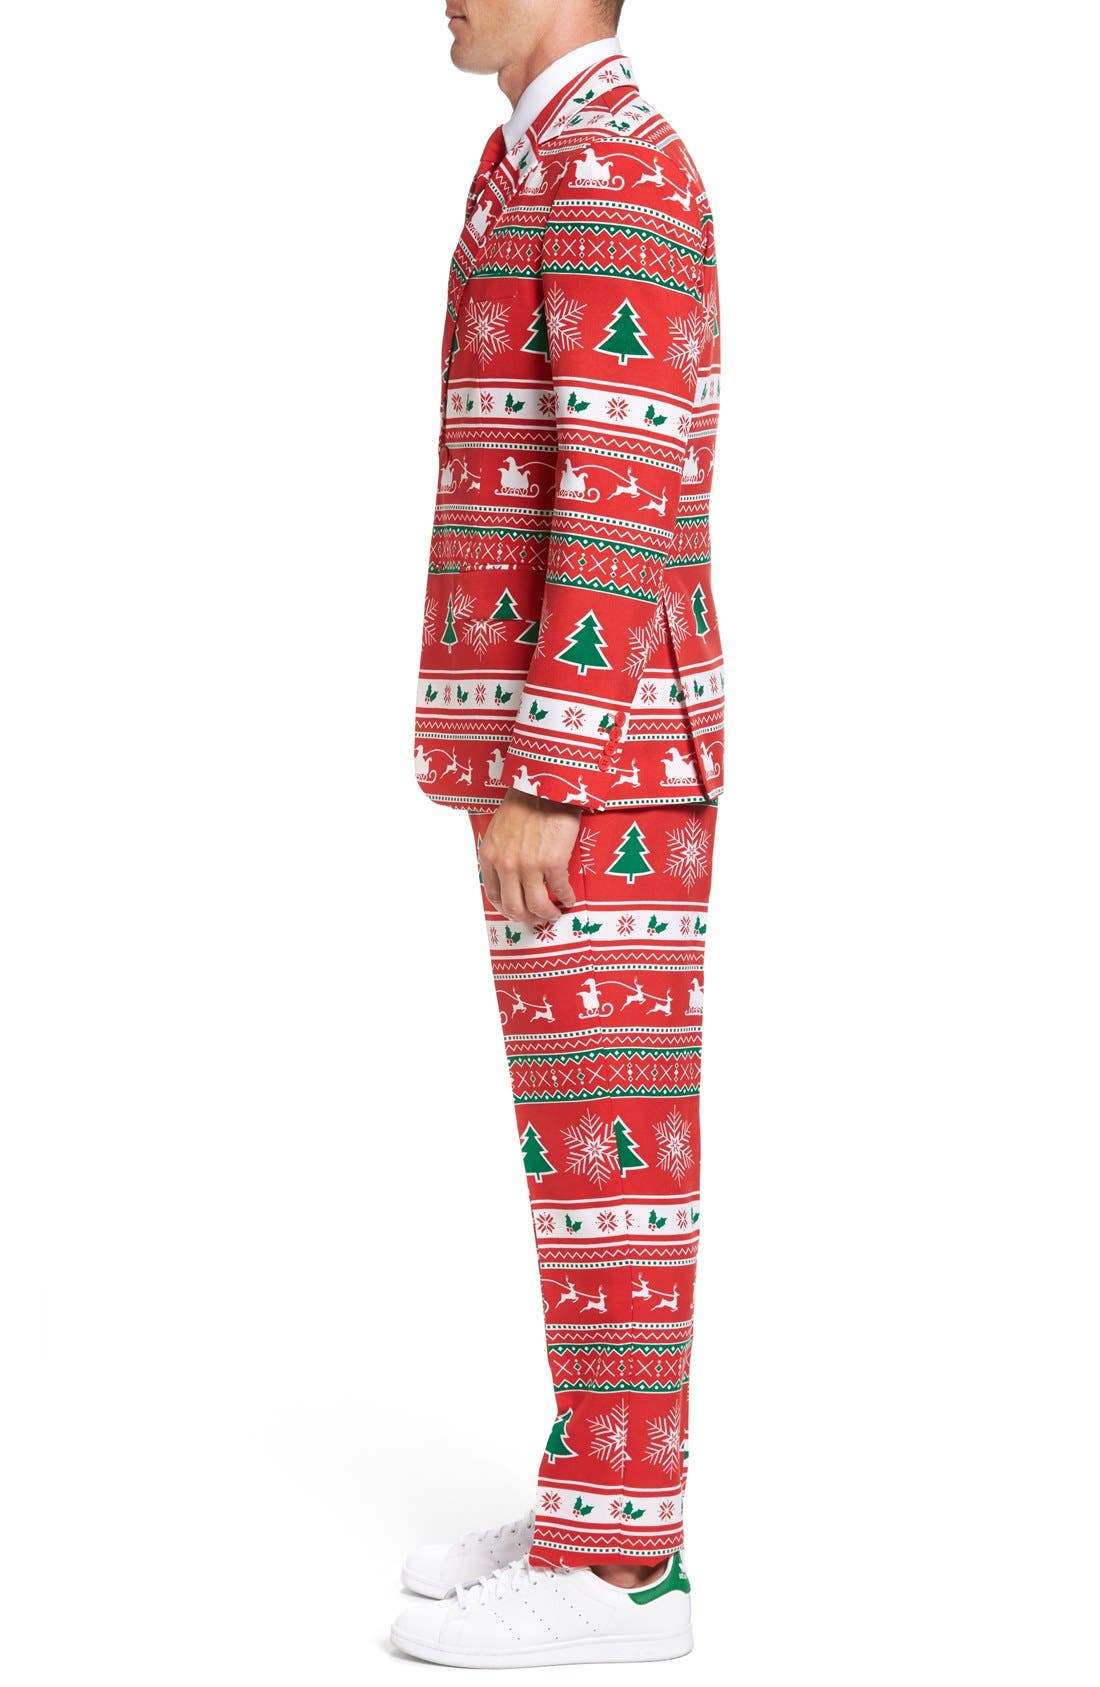 Alternate Image 3  - OppoSuits 'Winter Wonderland' Trim Fit Two-Piece Suit with Tie